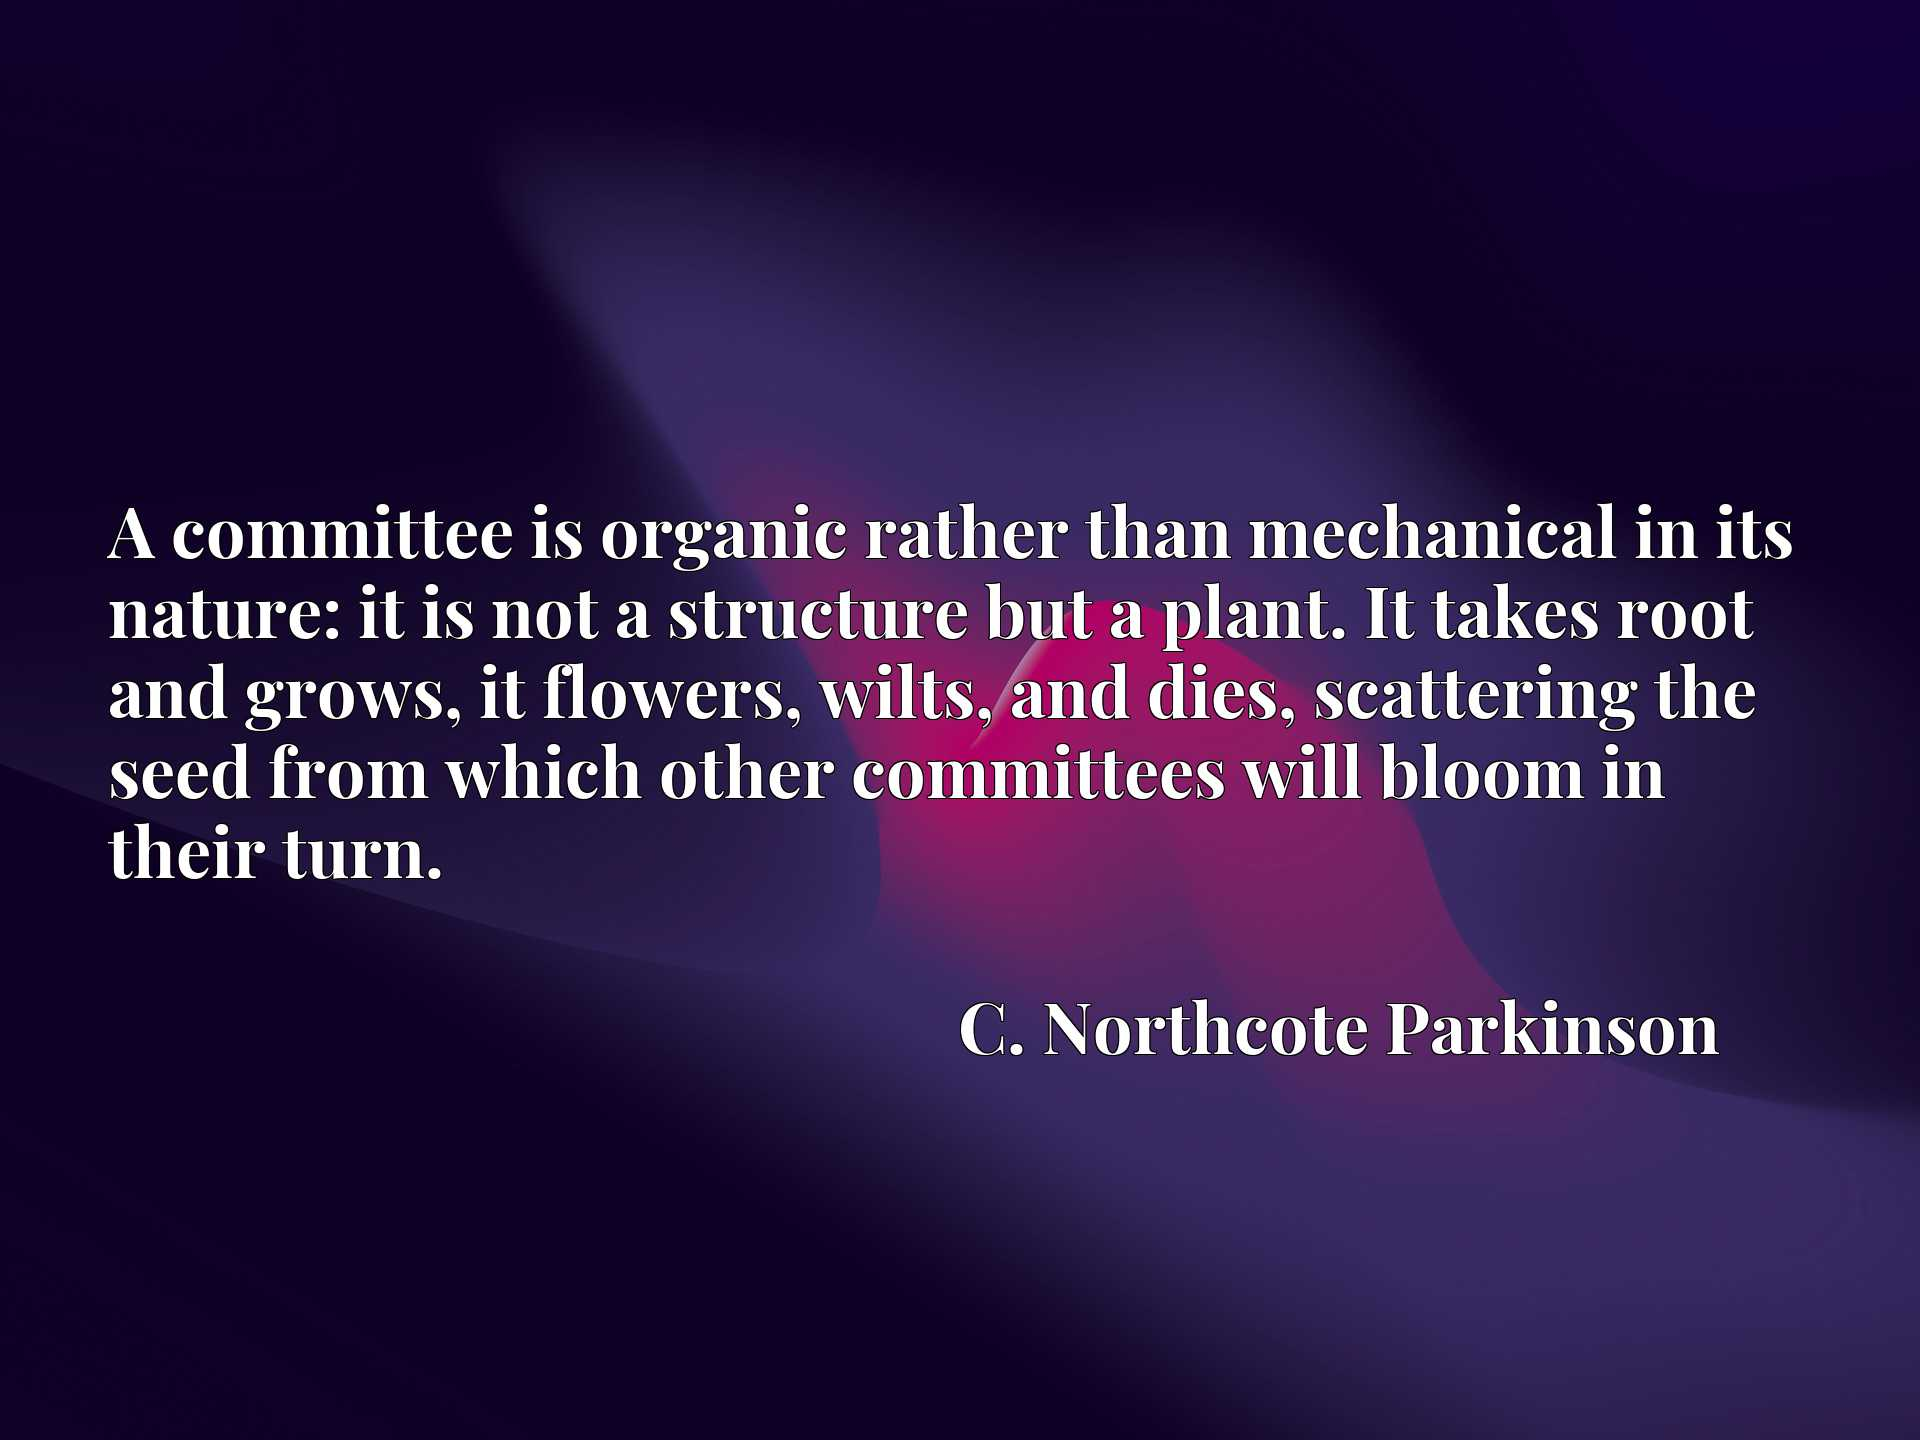 Quote Picture :A committee is organic rather than mechanical in its nature: it is not a structure but a plant. It takes root and grows, it flowers, wilts, and dies, scattering the seed from which other committees will bloom in their turn.